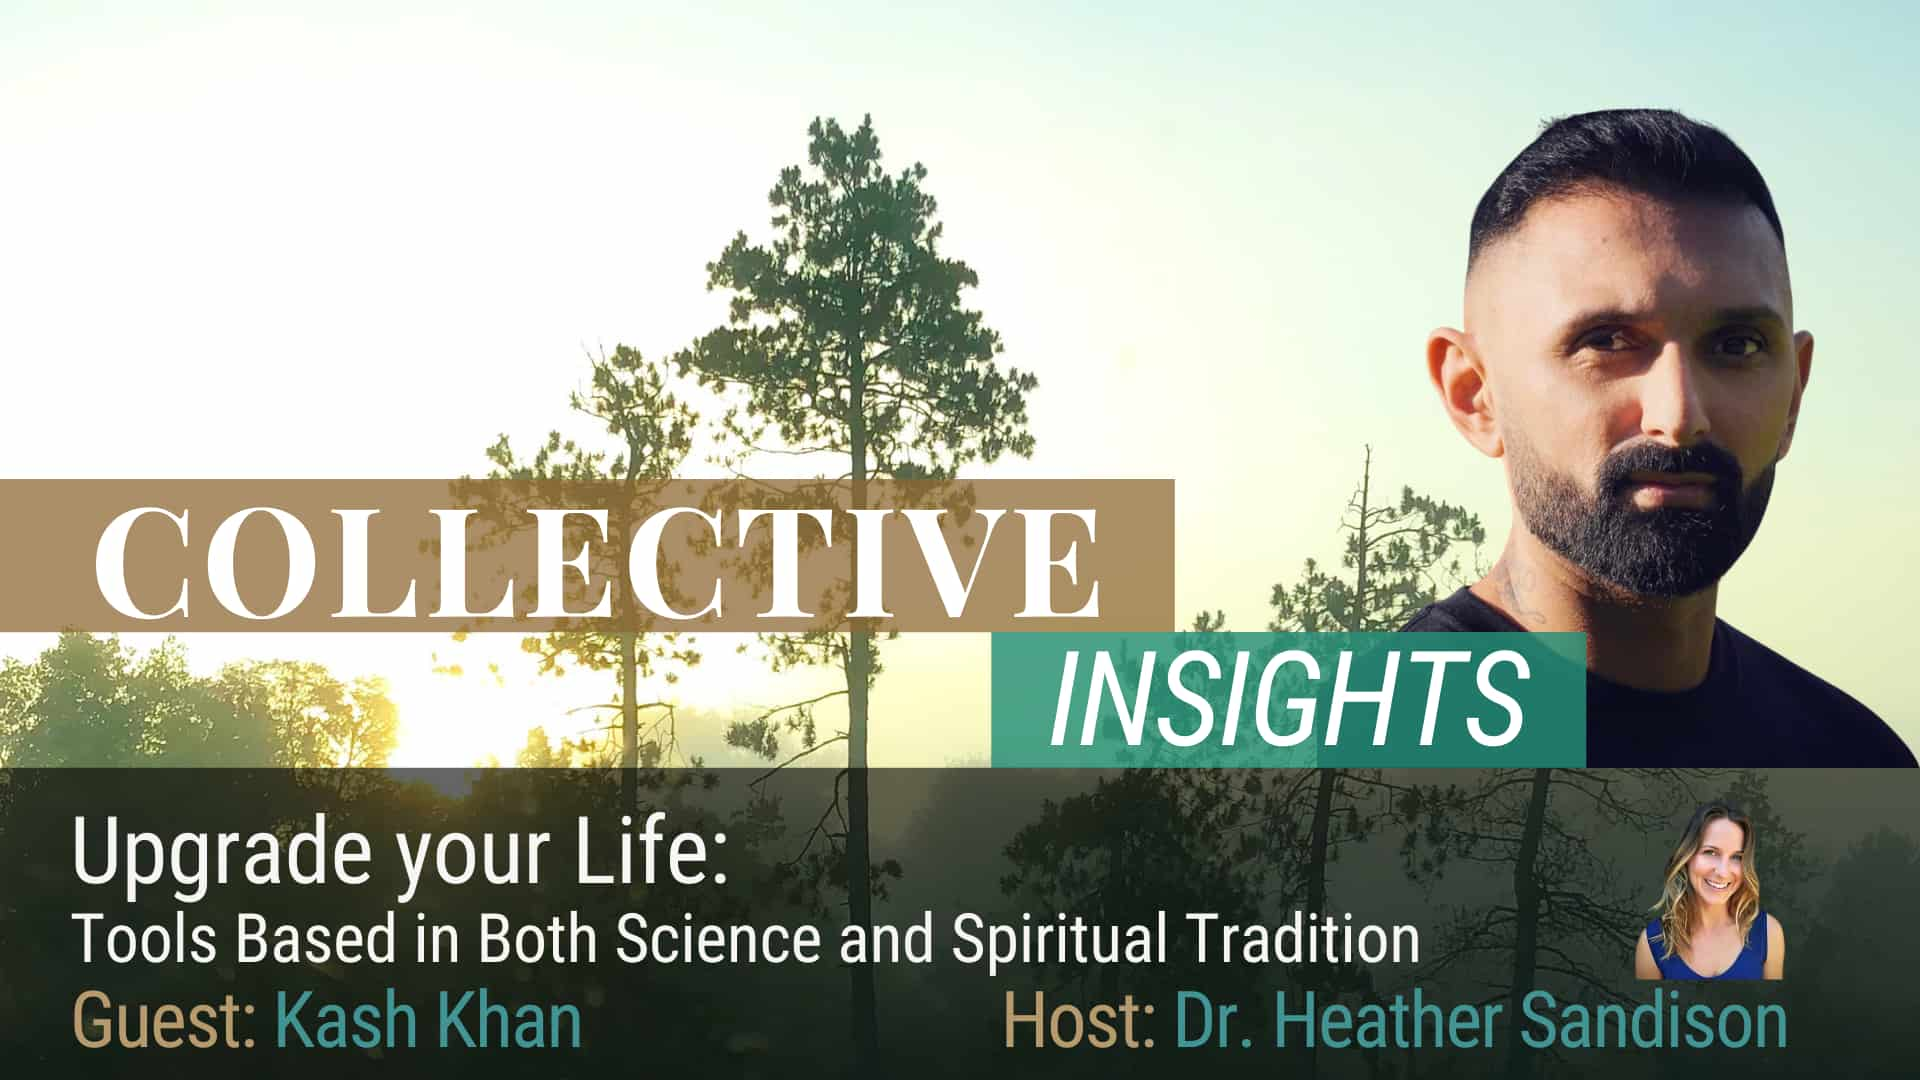 Upgrade Your Life: Tools Based in Both Science and Spiritual Tradition